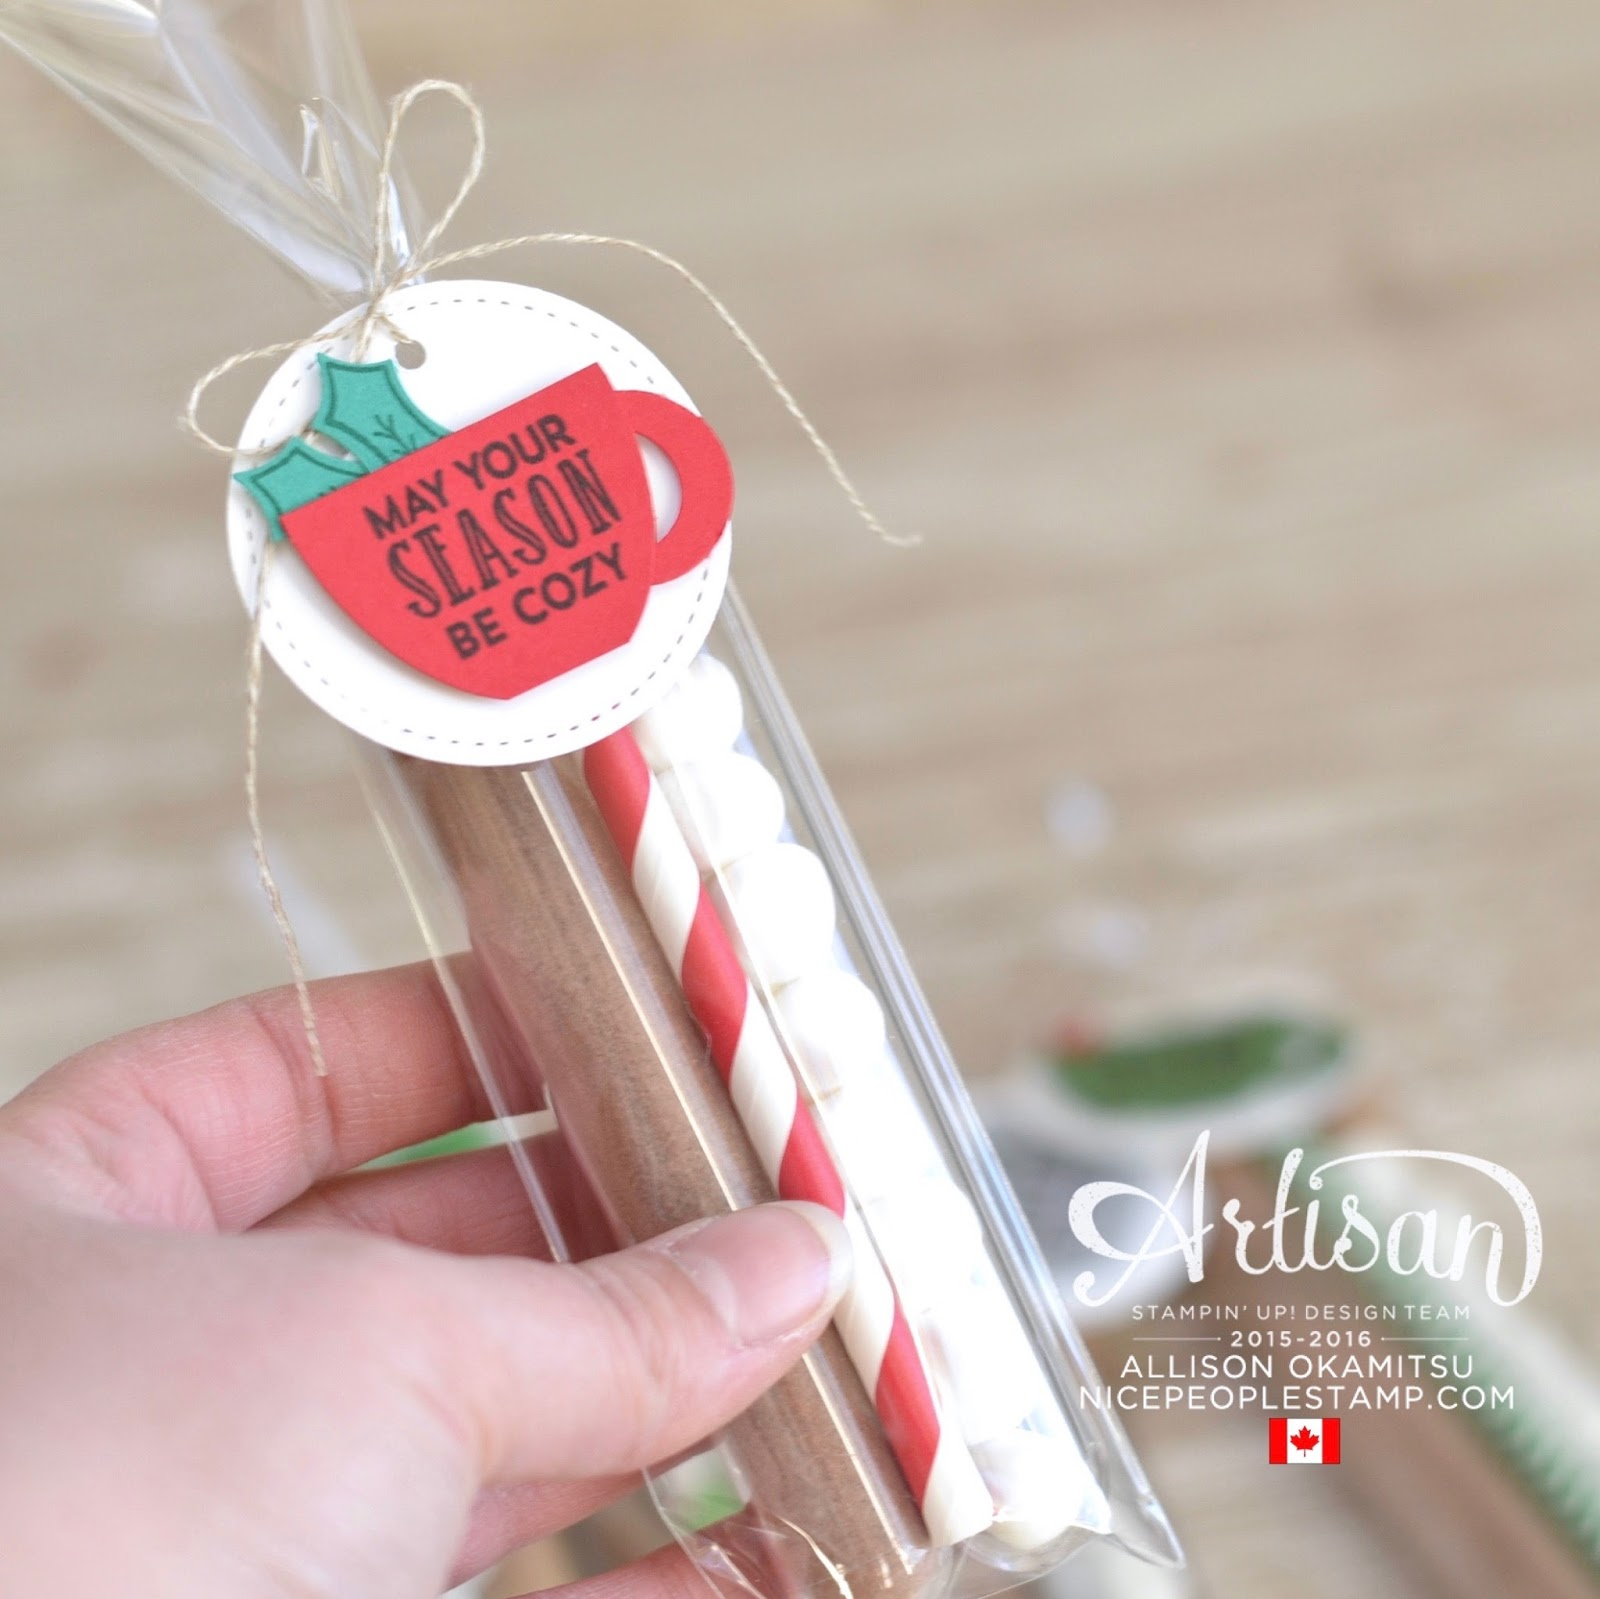 Nice people stamp test tube hot chocolate giftables for Test tubes for crafts